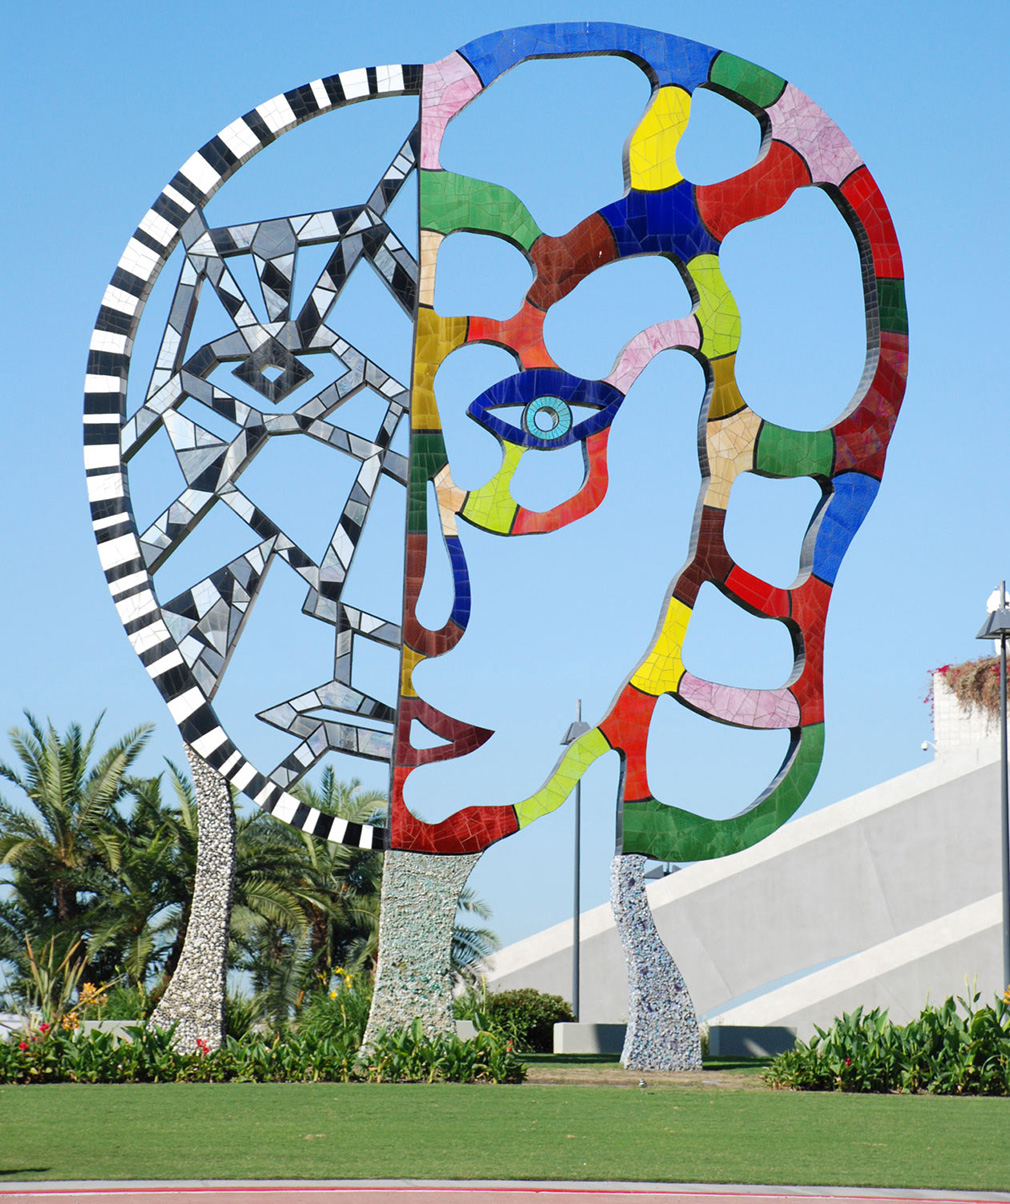 Photo of a monumental sculpture of a face by by Niki de Saint Phalle represented a face covered in black and white mosaic on one side and in brightly coloured tiles on the other.